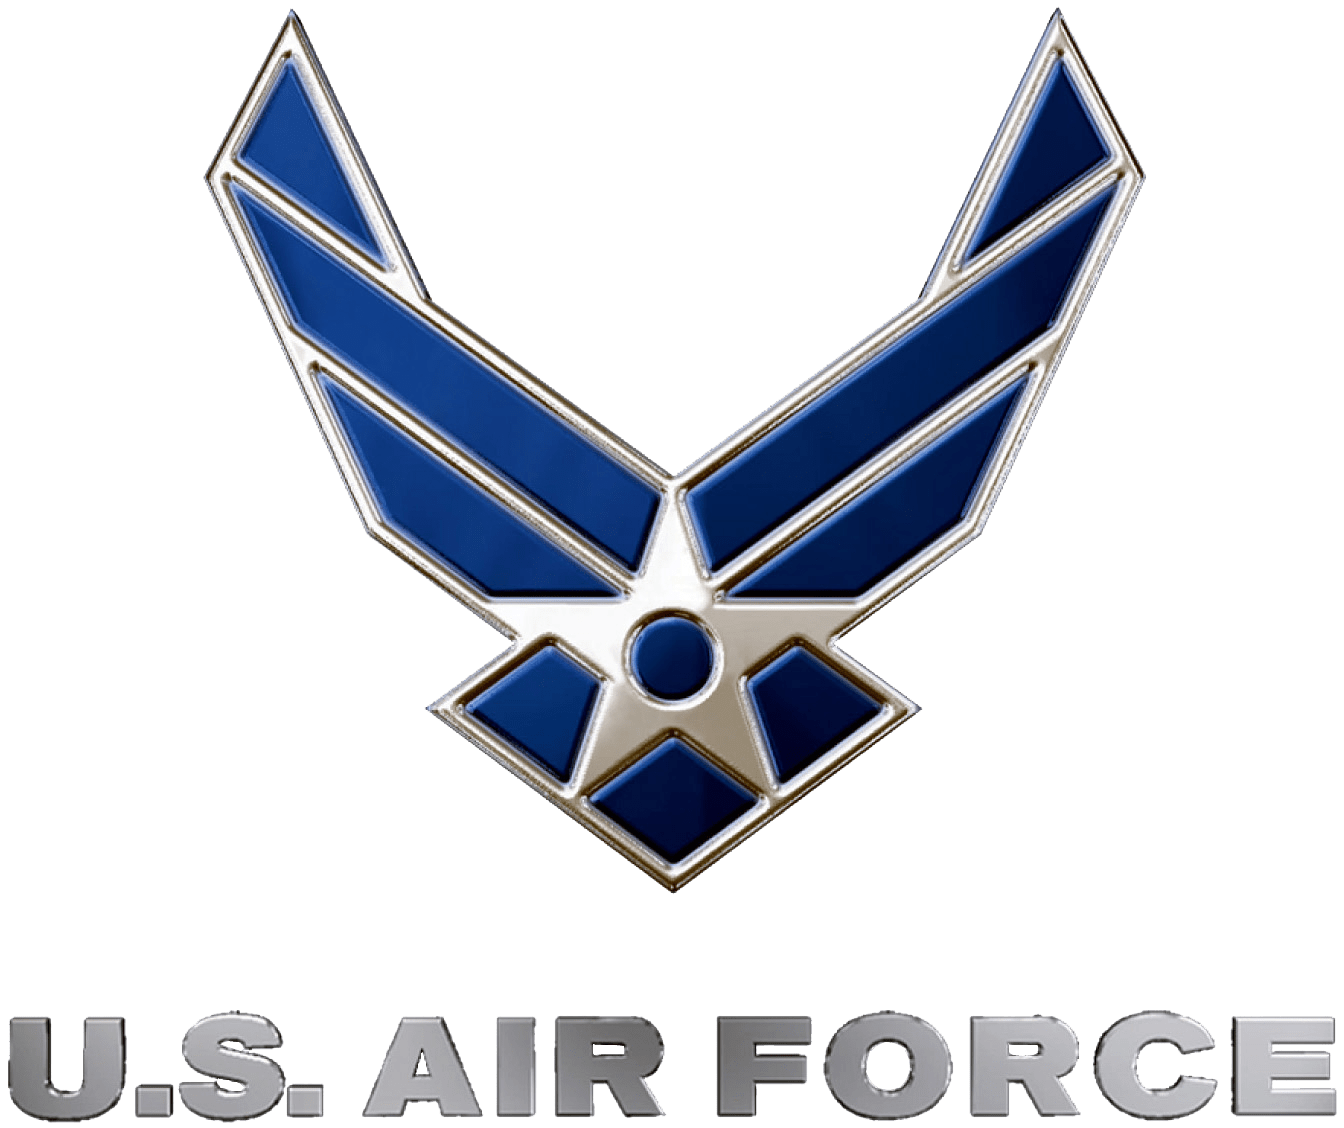 https://i0.wp.com/upload.wikimedia.org/wikipedia/commons/6/69/USAF_logo.png